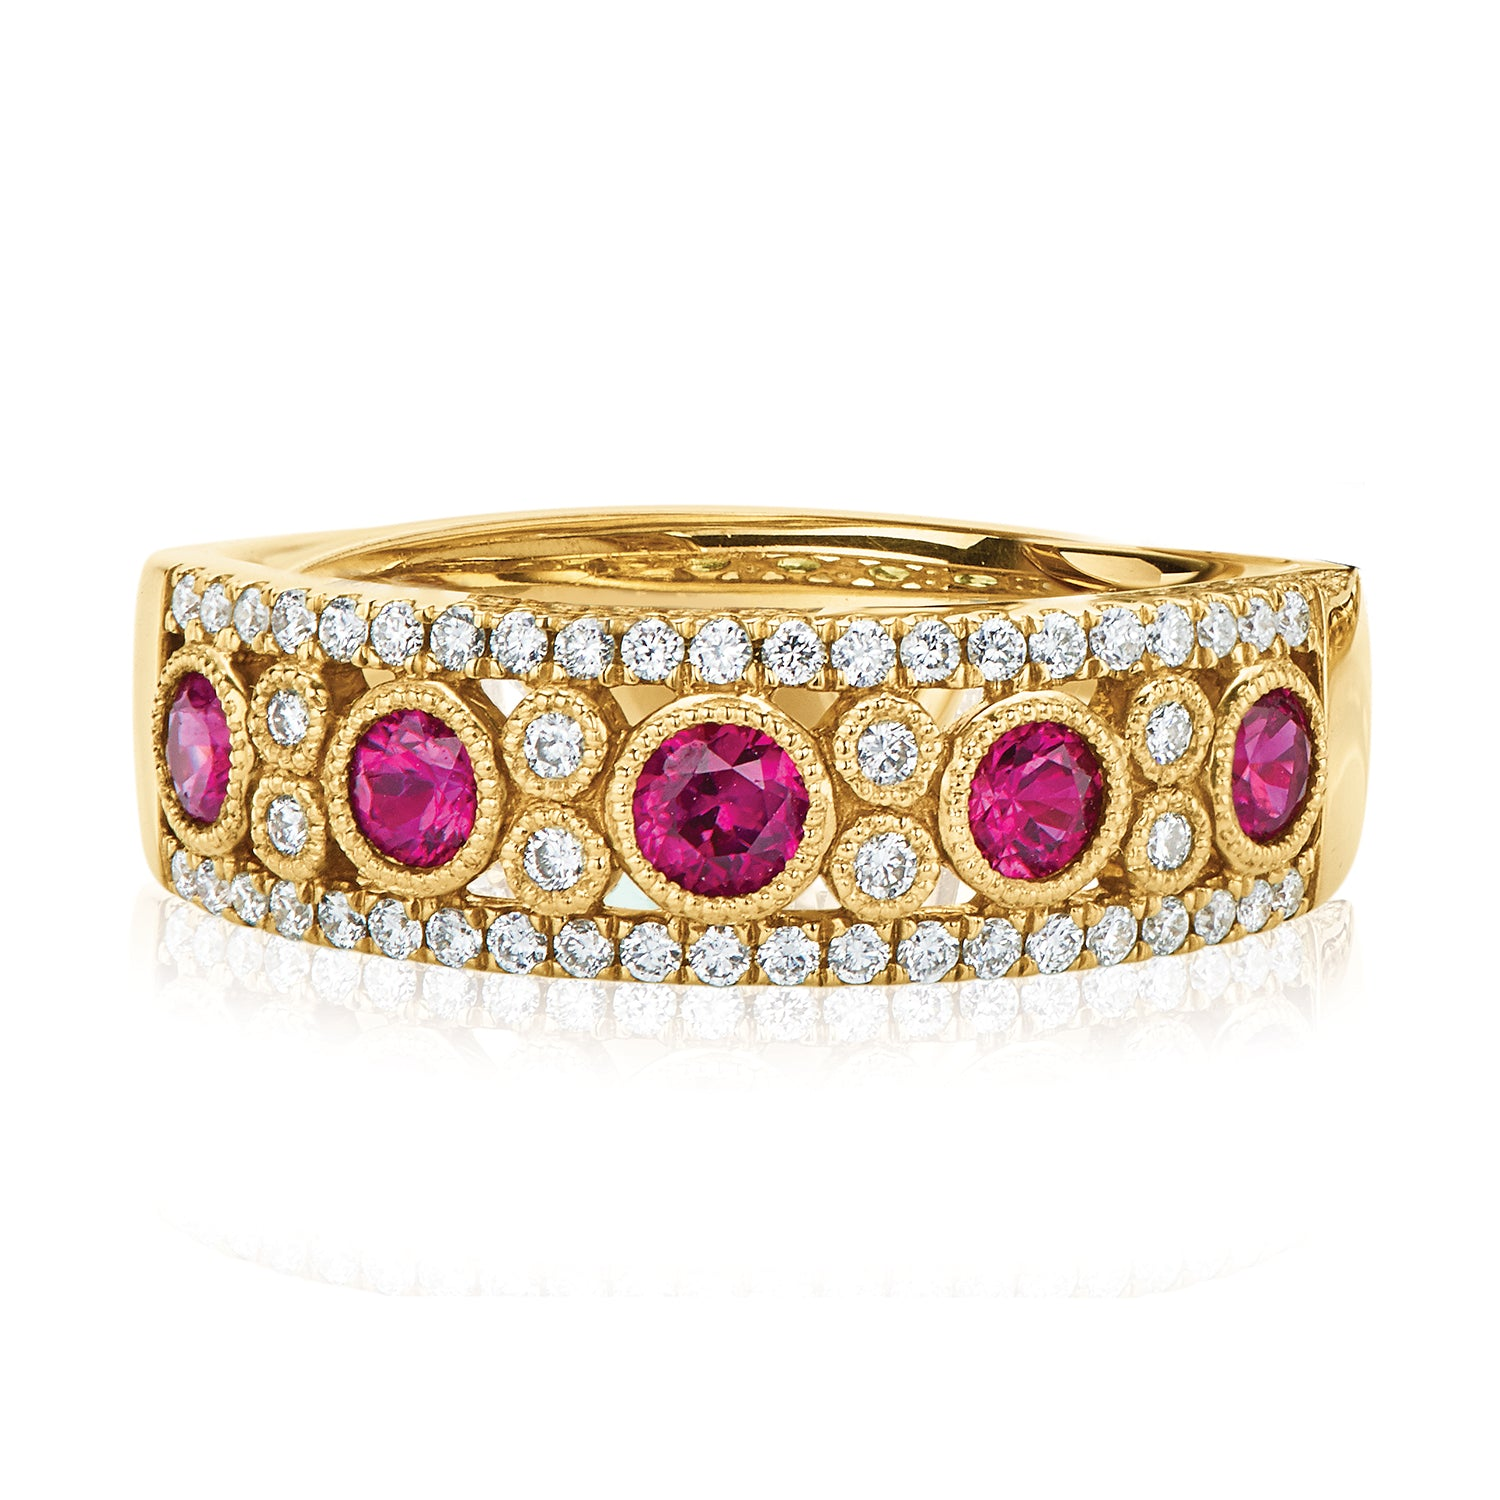 18ct Yellow Gold Round Brilliant Cut Ruby with 1/4 CARAT tw of Diamonds